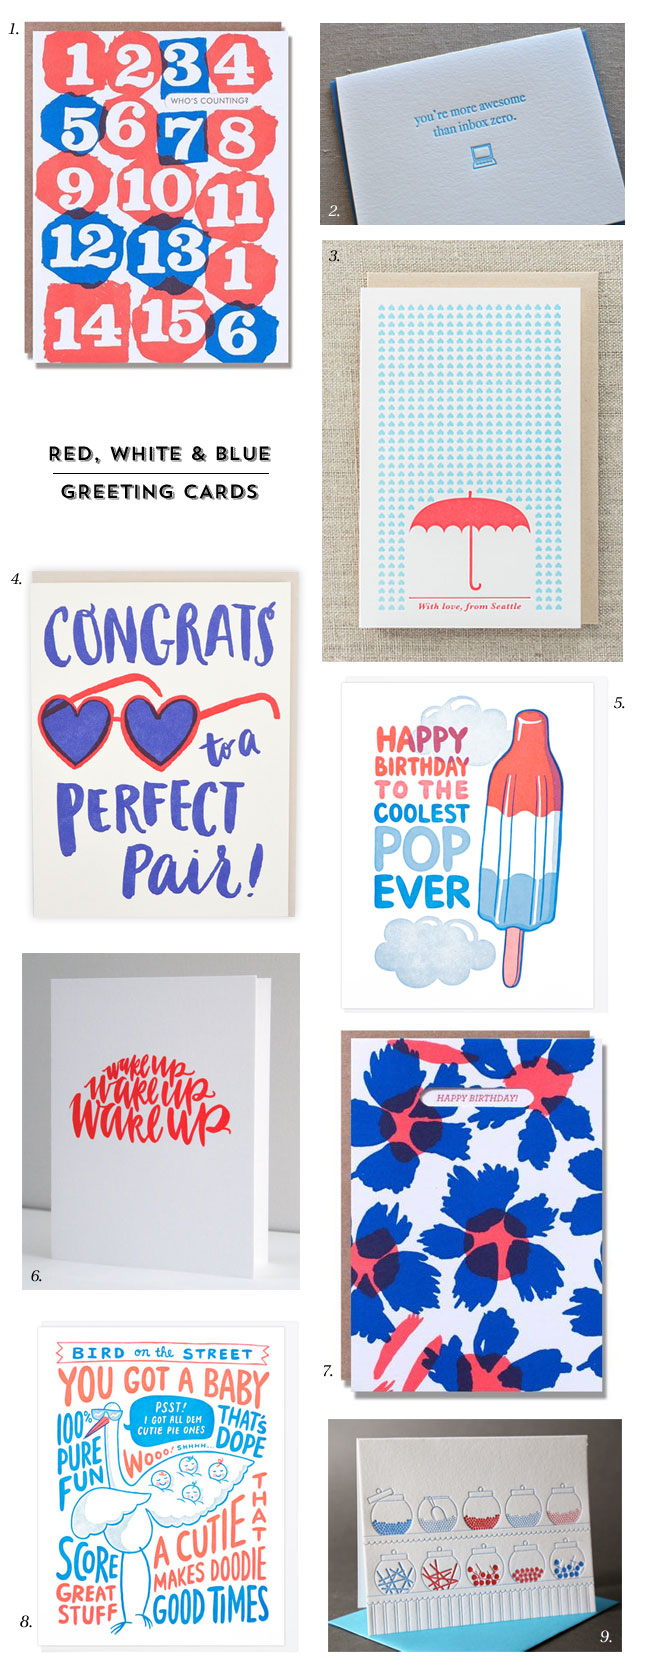 Red, White & Blue Greeting Cards